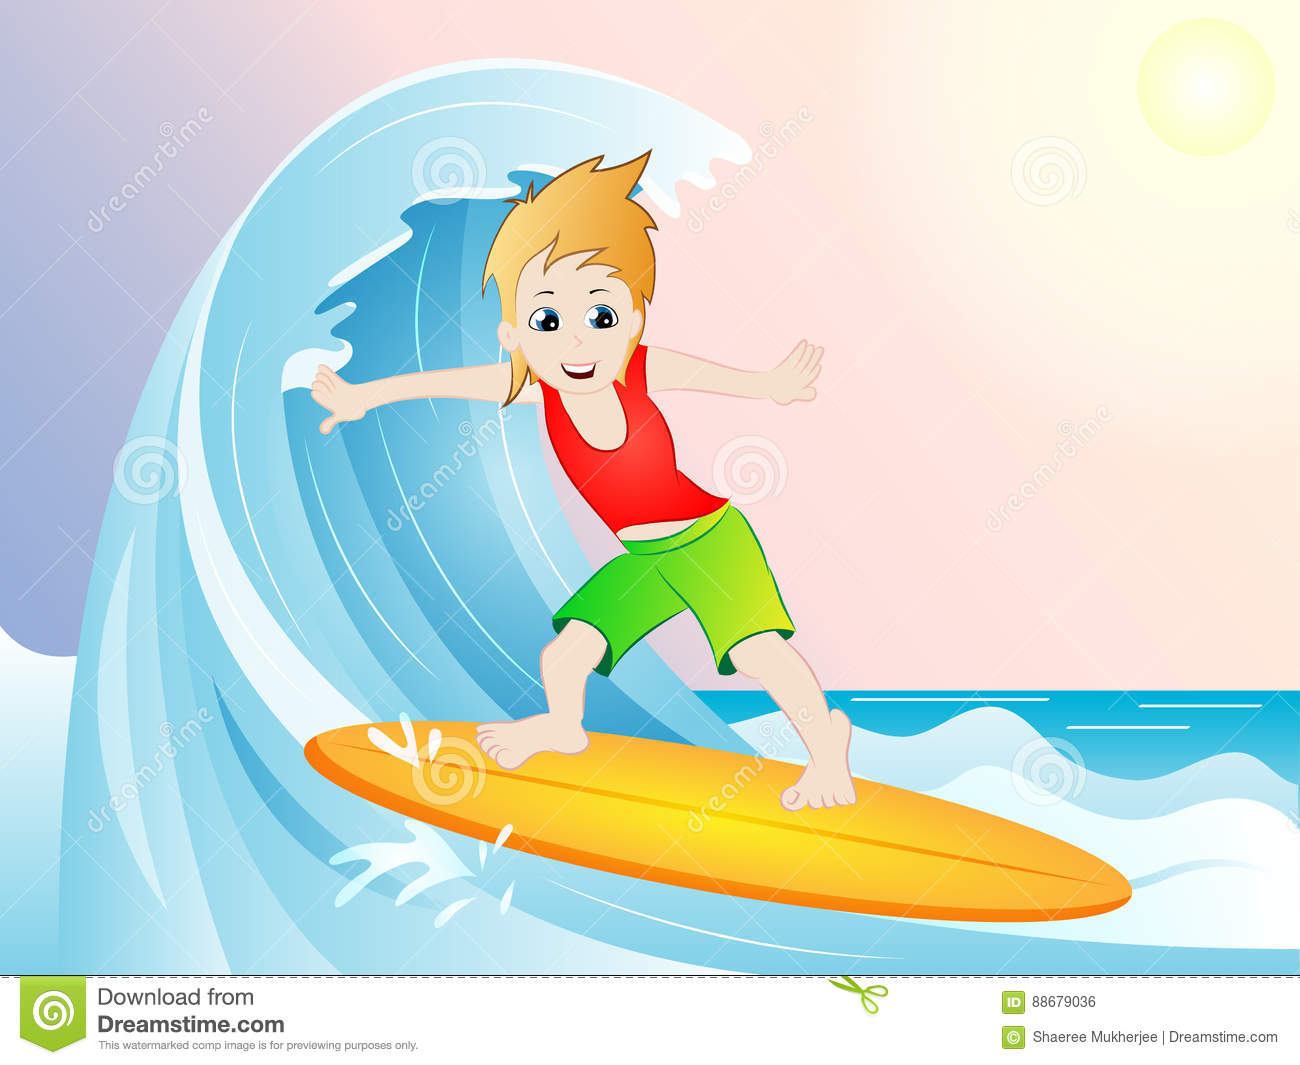 hight resolution of cartoon clipart vector illustration drawing of a surfer on surf boat with beautiful background